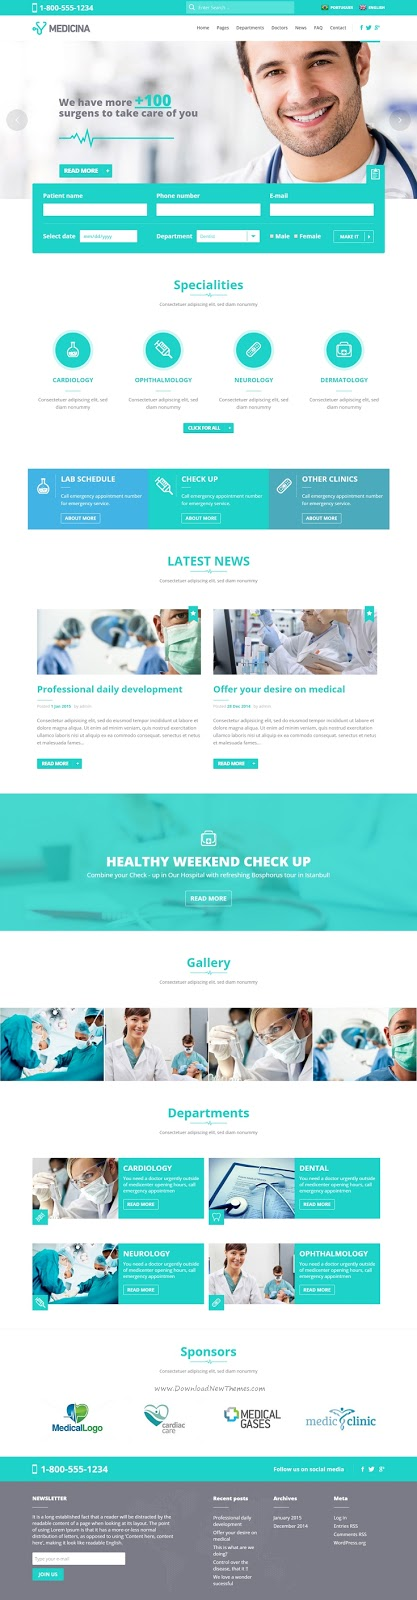 Best WordPress Theme for Medical Business Website